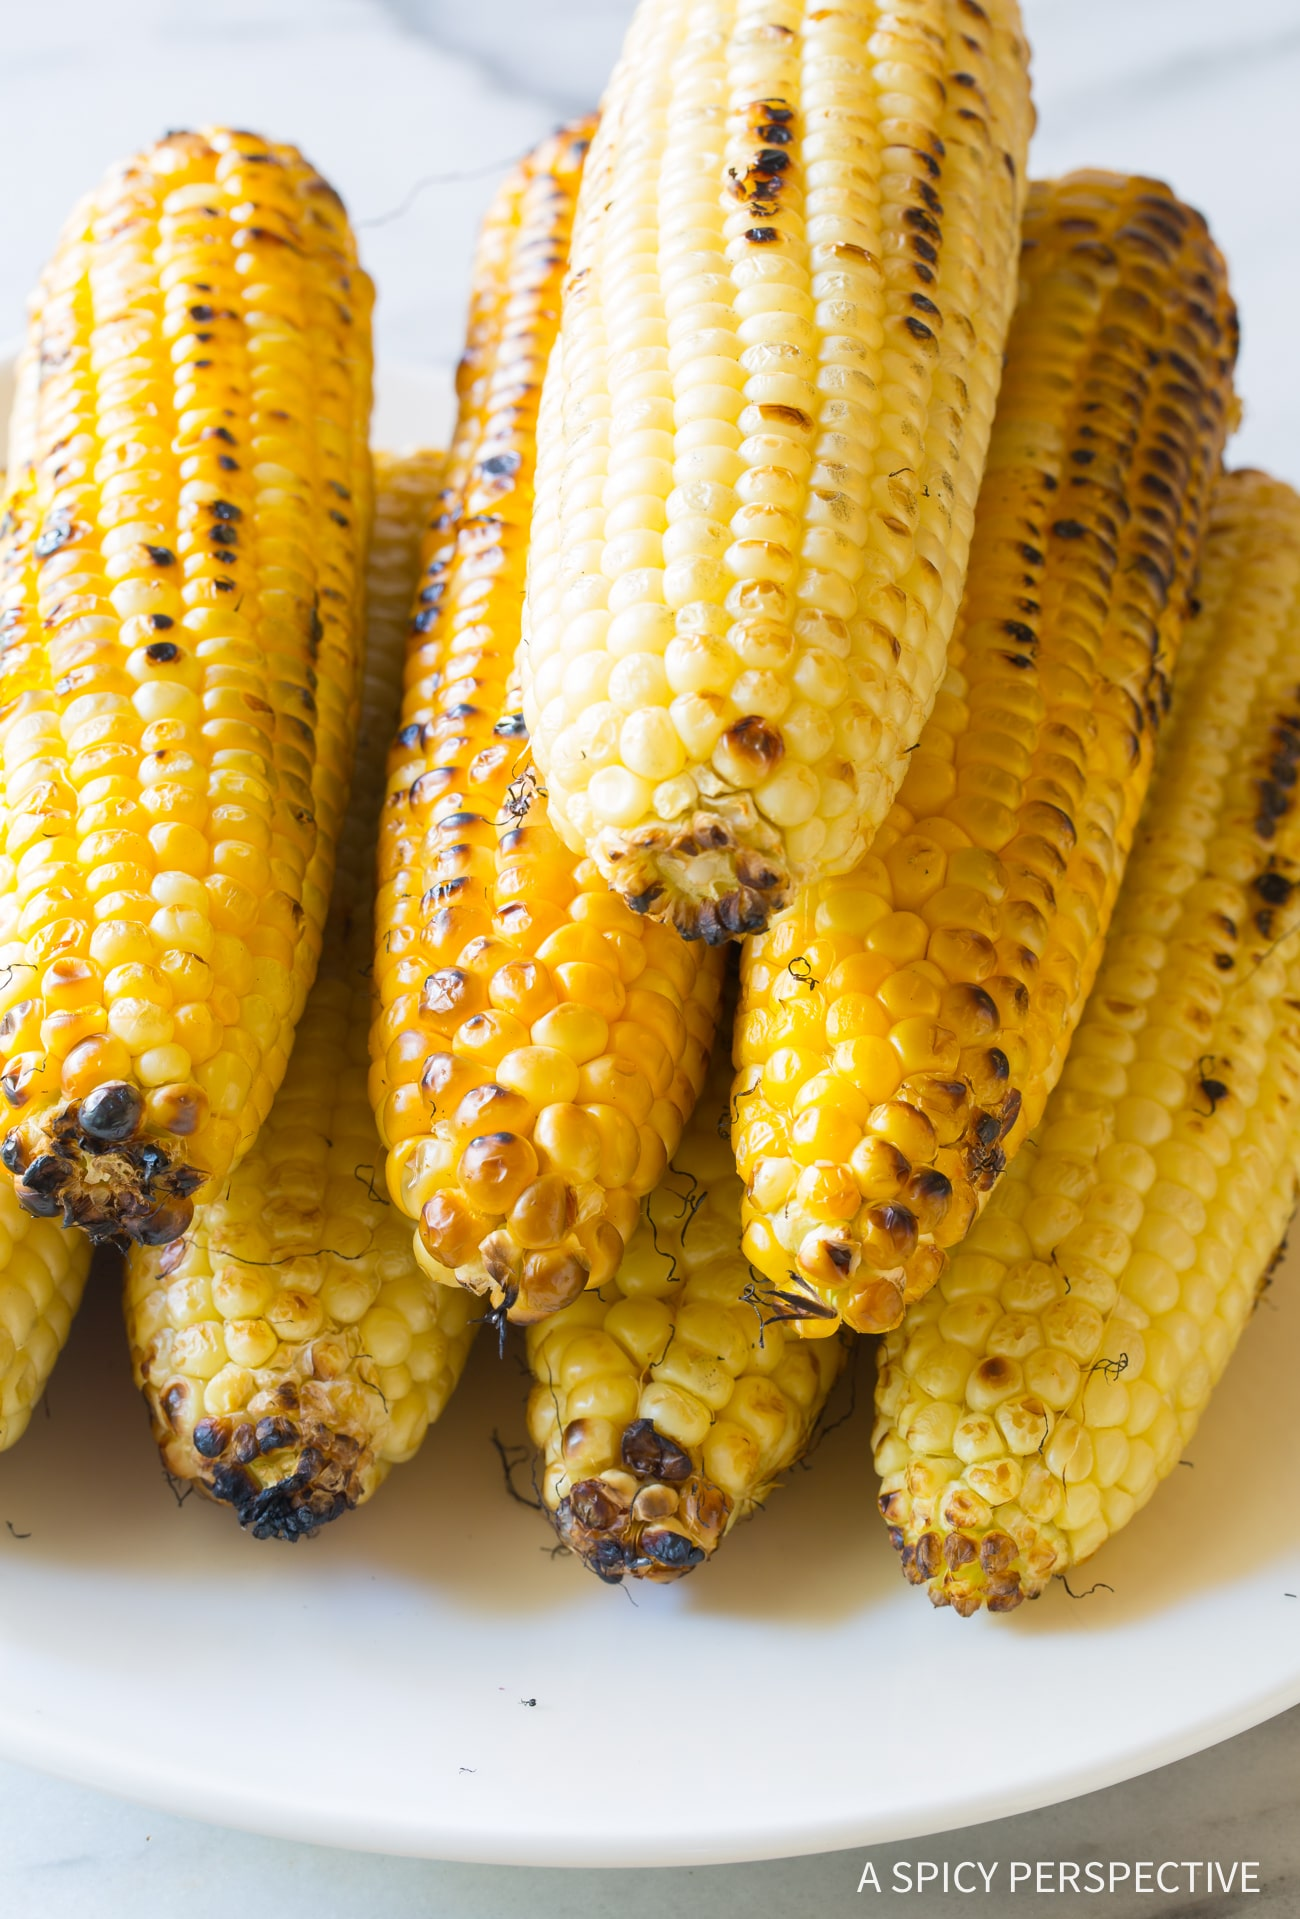 Making Grilled Mexican Street Corn Salad